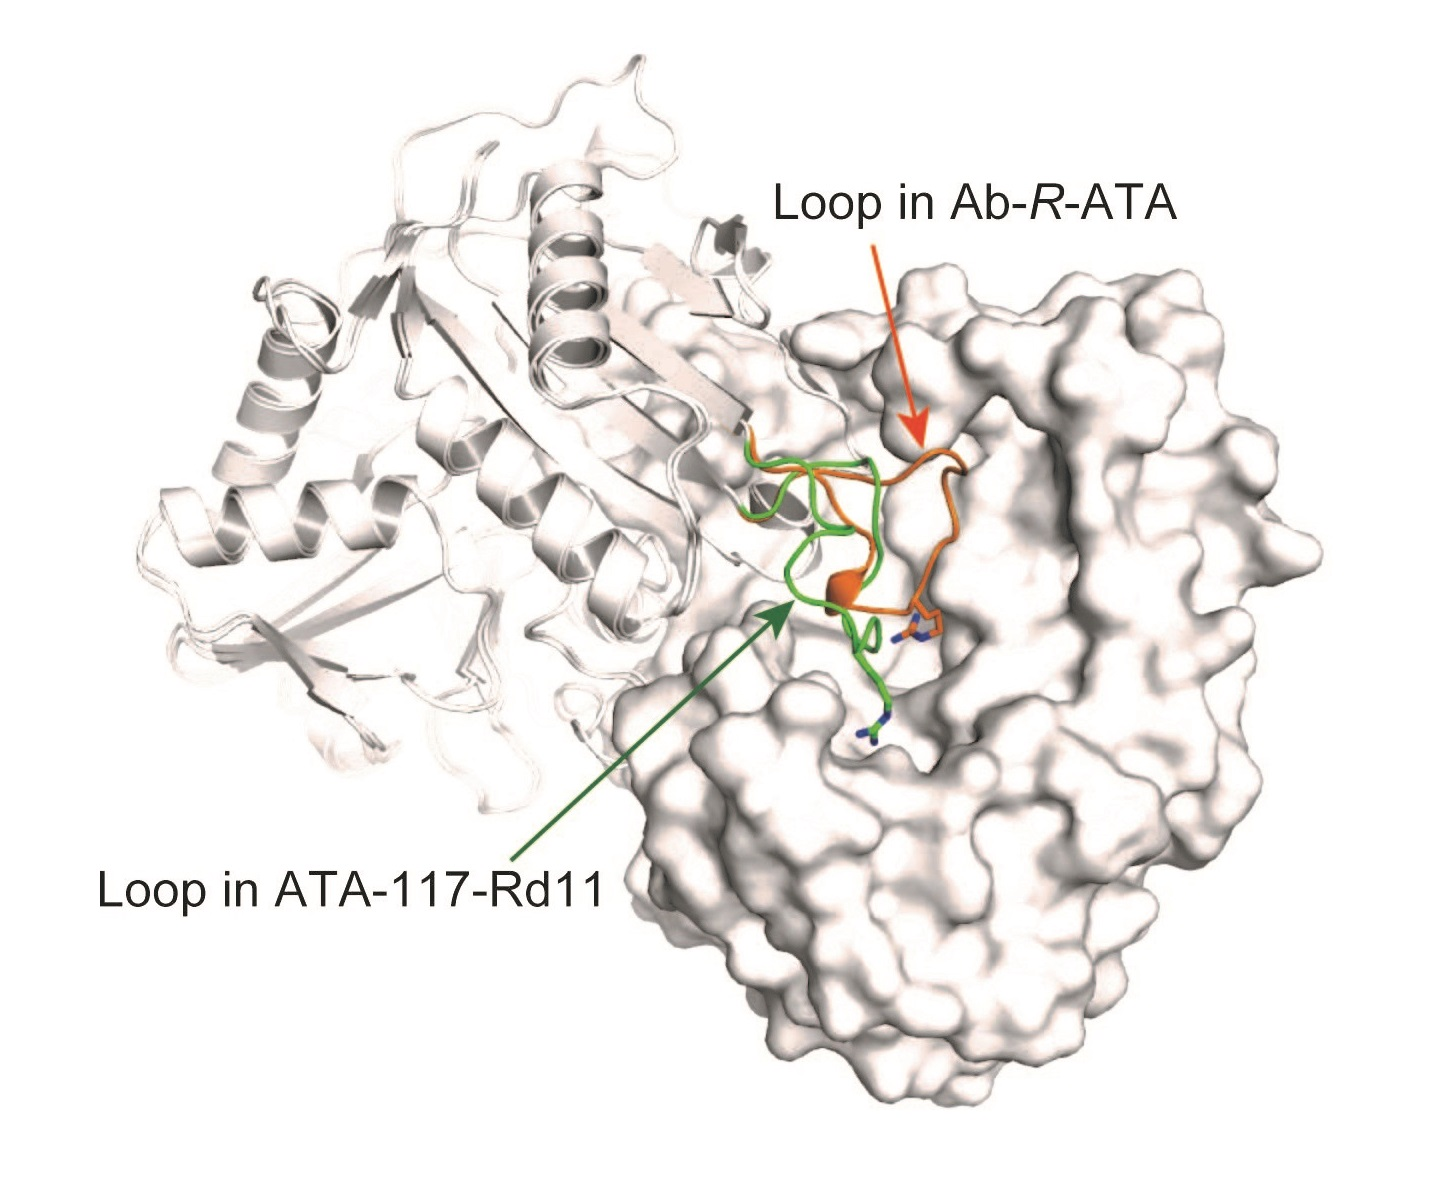 © 2015 Masaru Tanokura.Superimposed dimeric structures of Ab-R-ATA and ATA-117-Rd11. One protomer of the dimer is shown in surface representation (right) and the other is drawn as a ribbon diagram (left). The loops near the active sites of Ab-R-ATA and ATA-117-Rd11 are highlighted in orange and green, respectively, clearly showing the difference in structure.